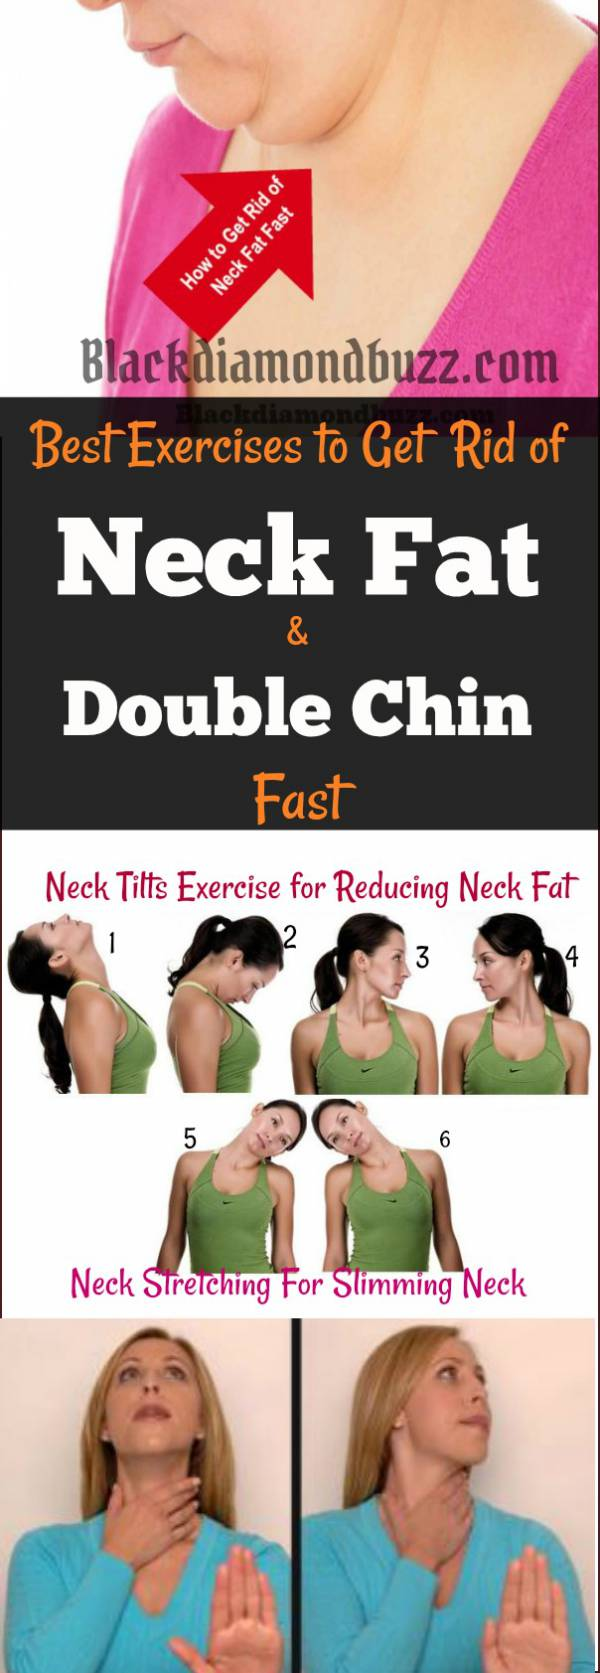 How To Get Rid Of Neck Fat Fast Exercises And Home Remedies Tips